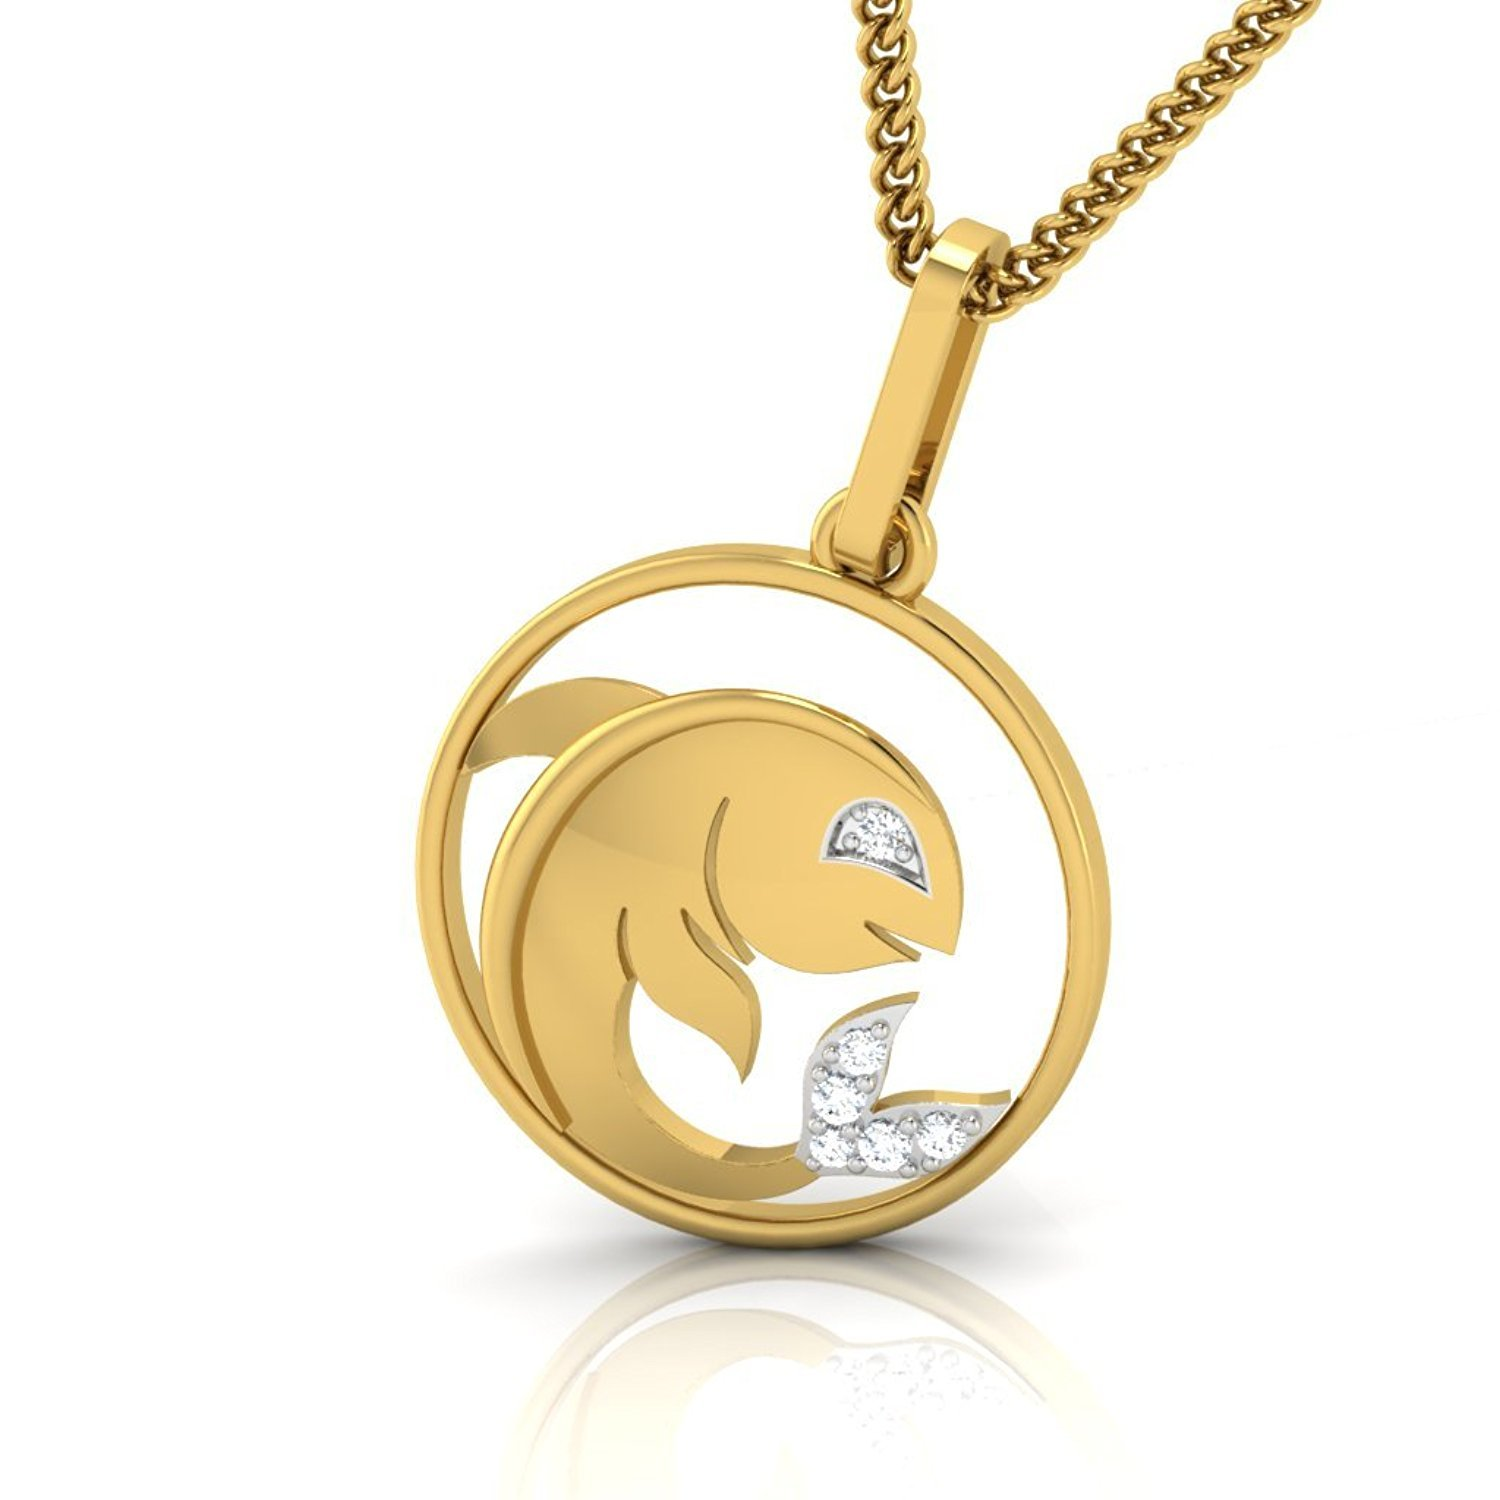 Suhana Jewellery Simulated Diamond Studded Zodiac Icon PISCES Sign Pendant Necklace in 14K Yellow Gold Plated With Box Chain